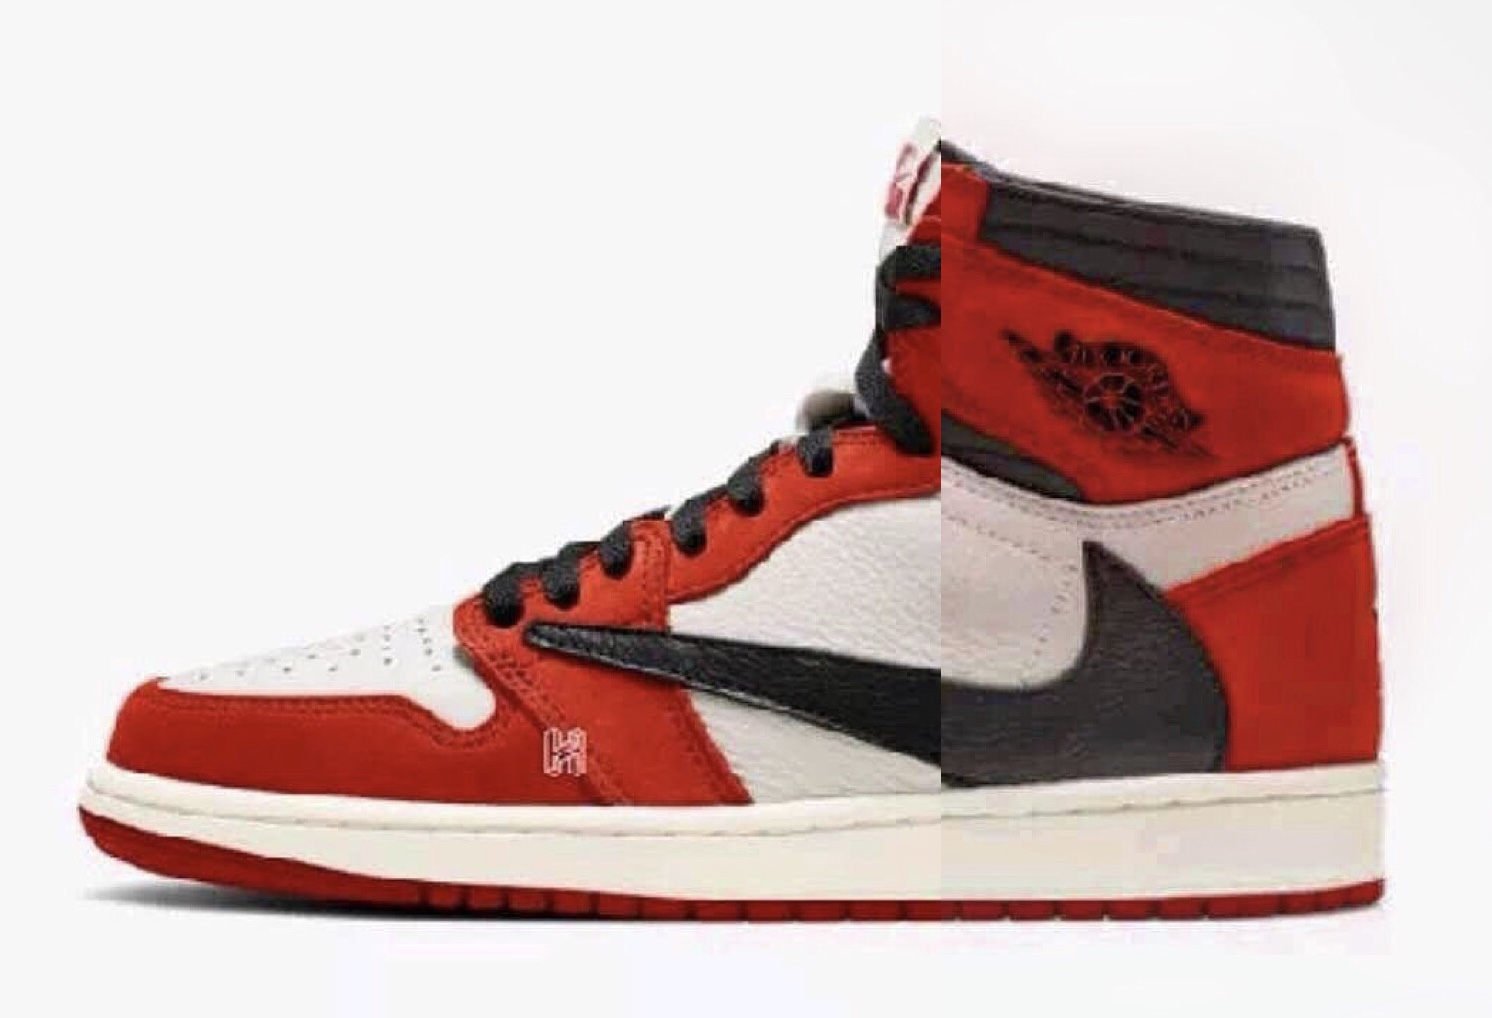 travis-scott-nike-air-jordan-1-red-black-leak